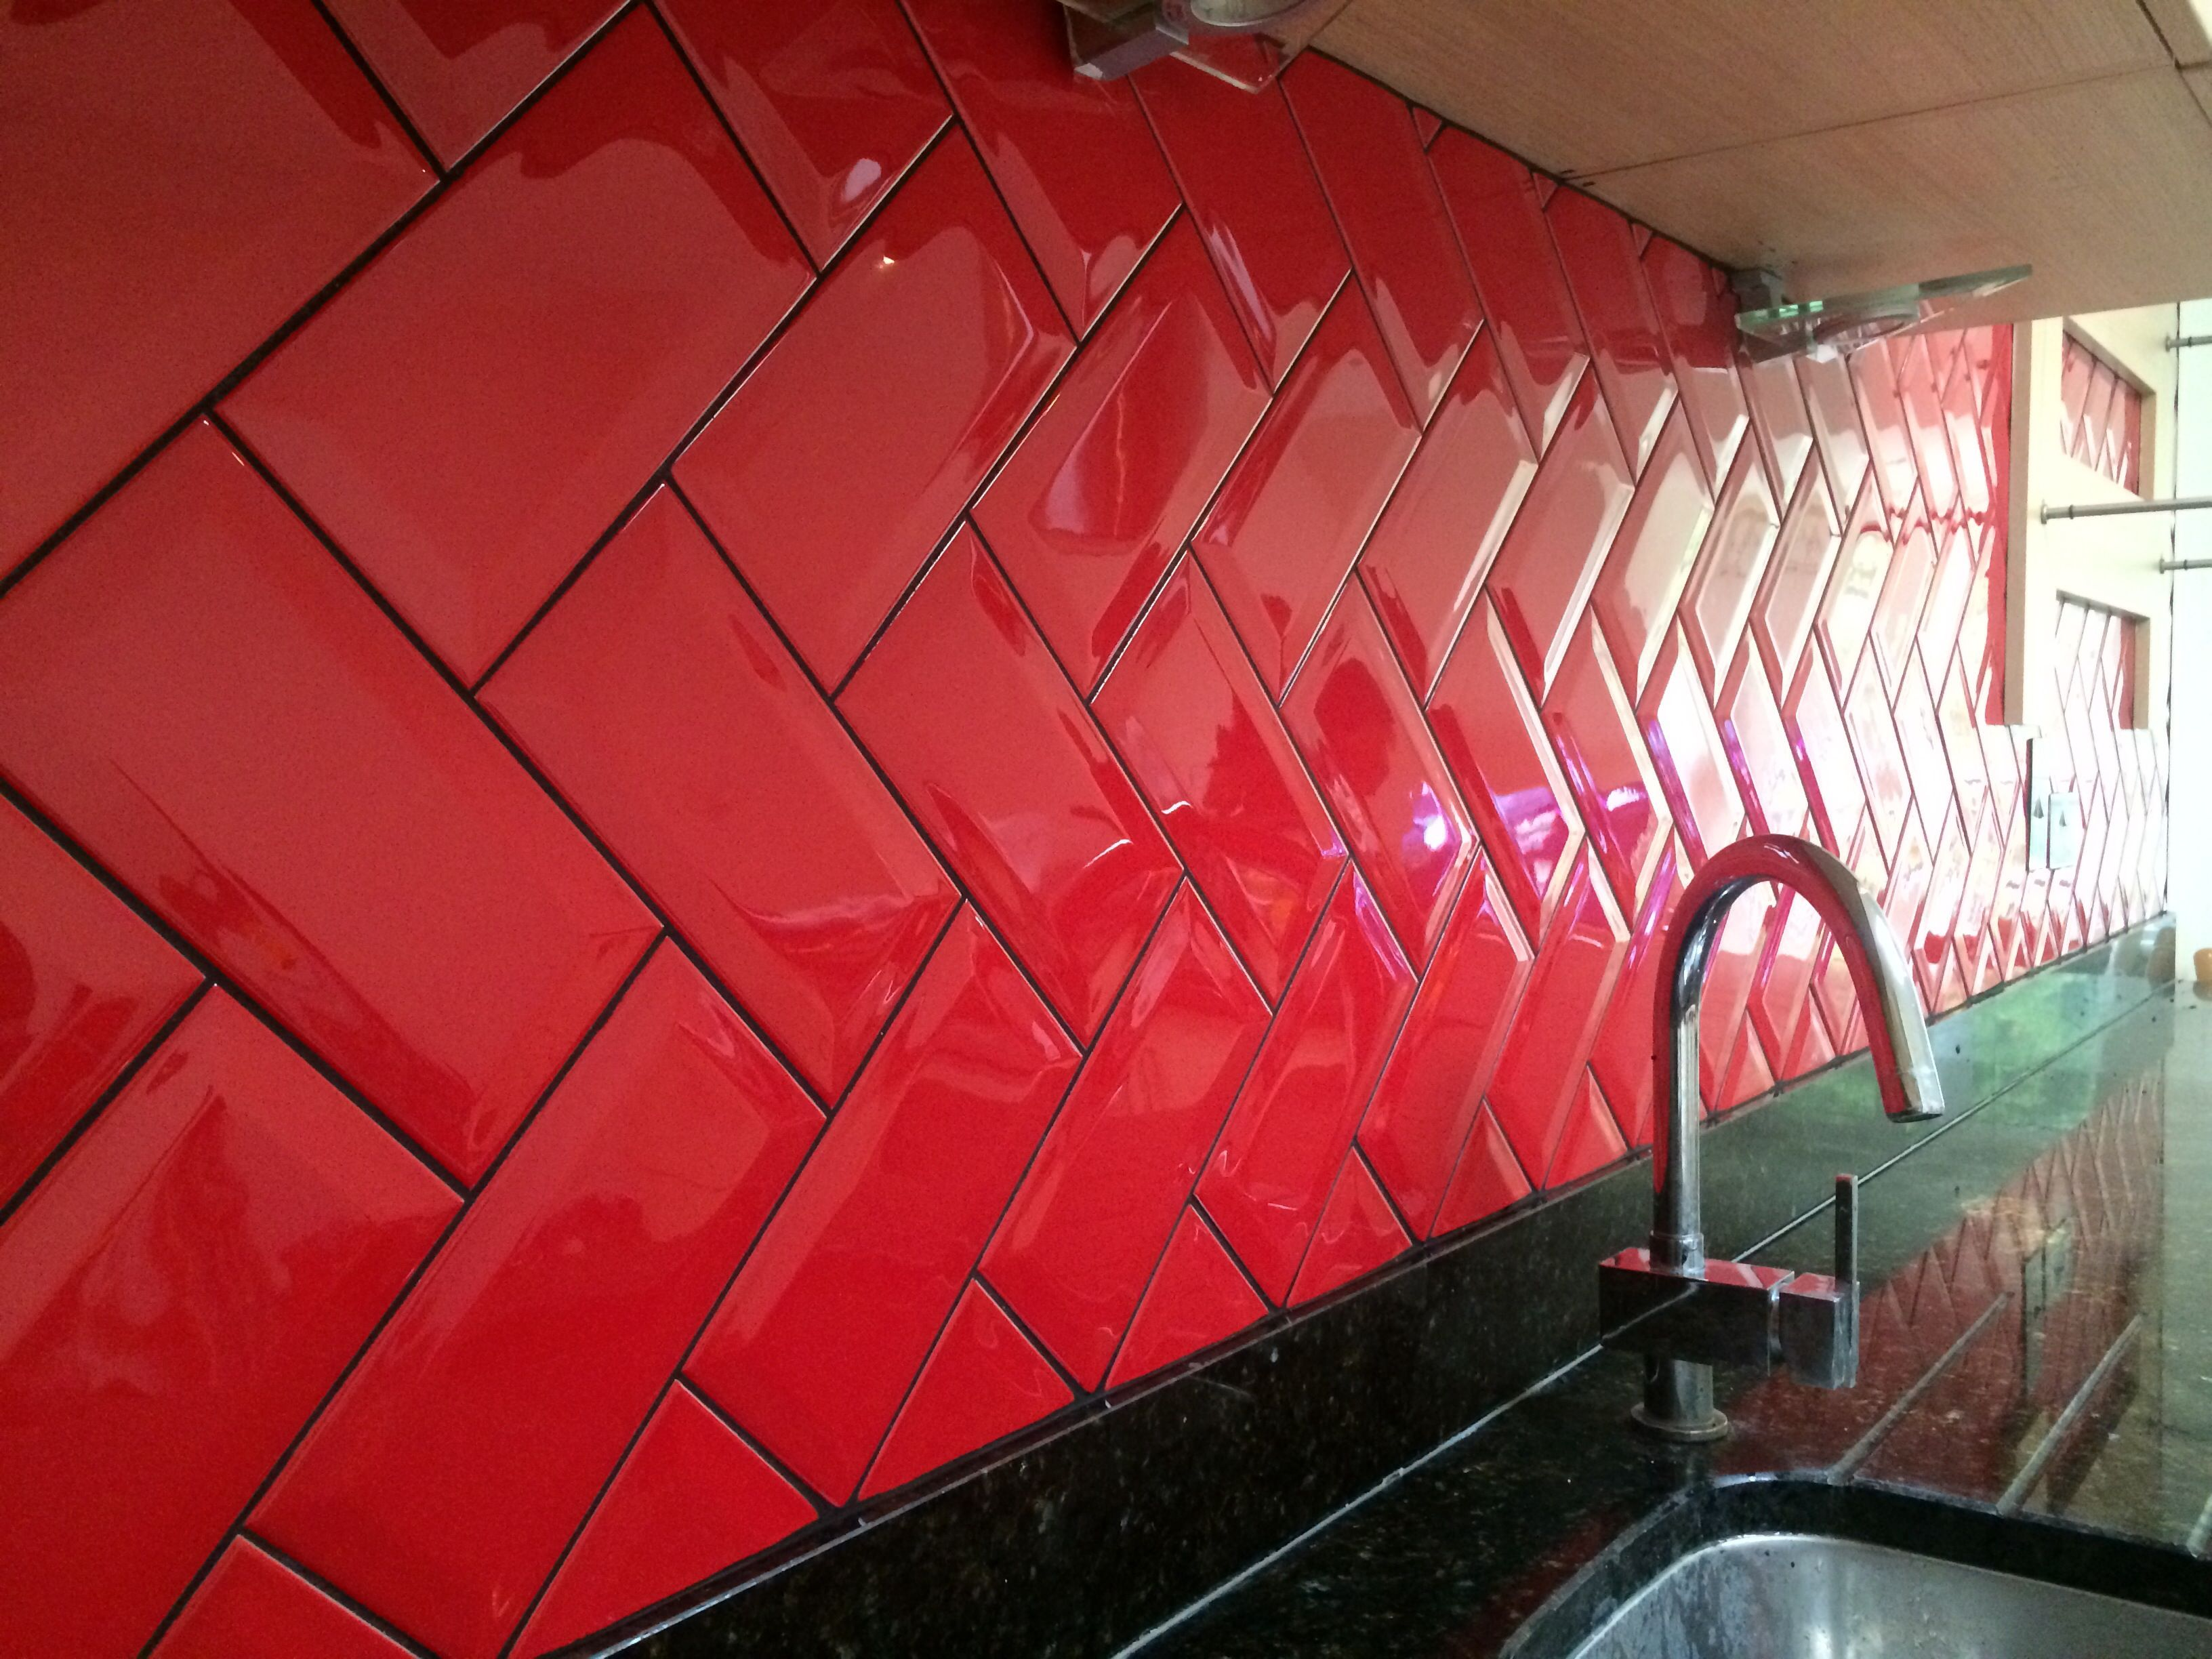 Red Kitchen Tile Design Ideas ~ Kitchen metro tiles design ideas modular kitchen in red colour